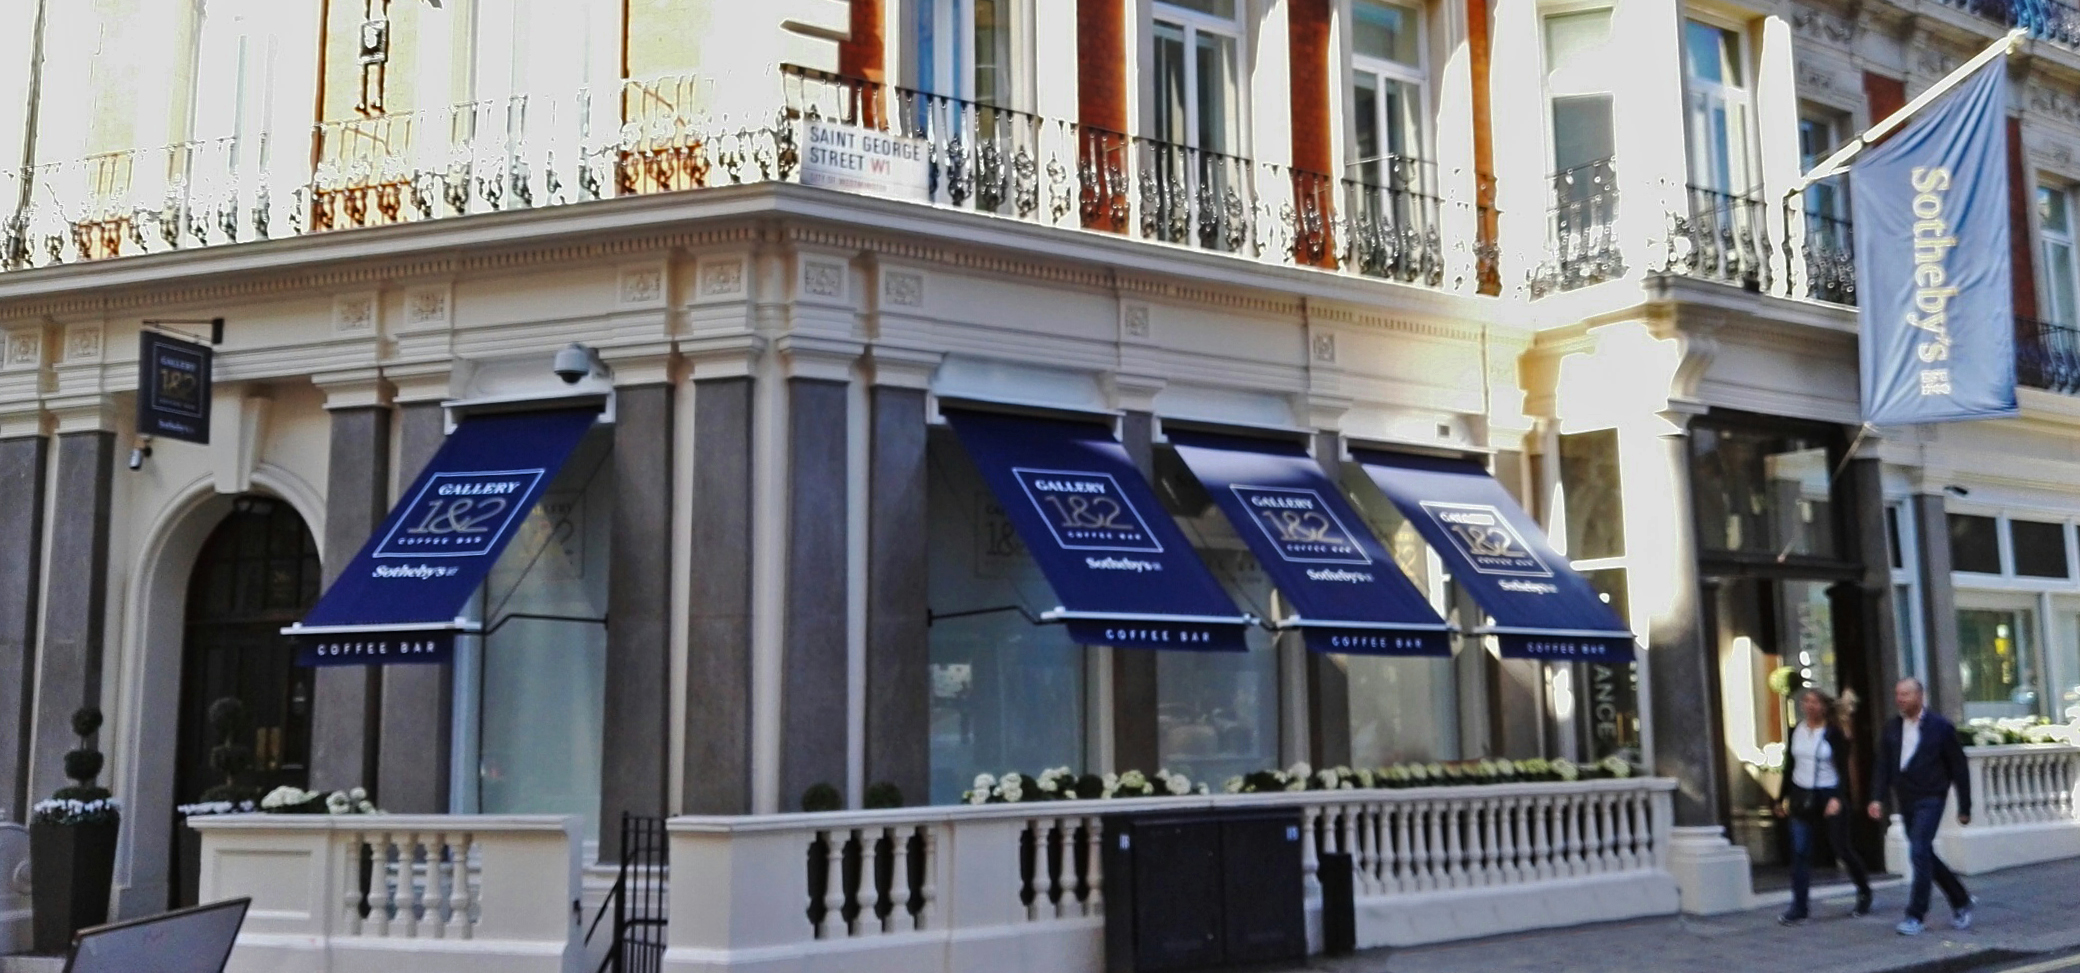 Sotheby's cafe awning 2